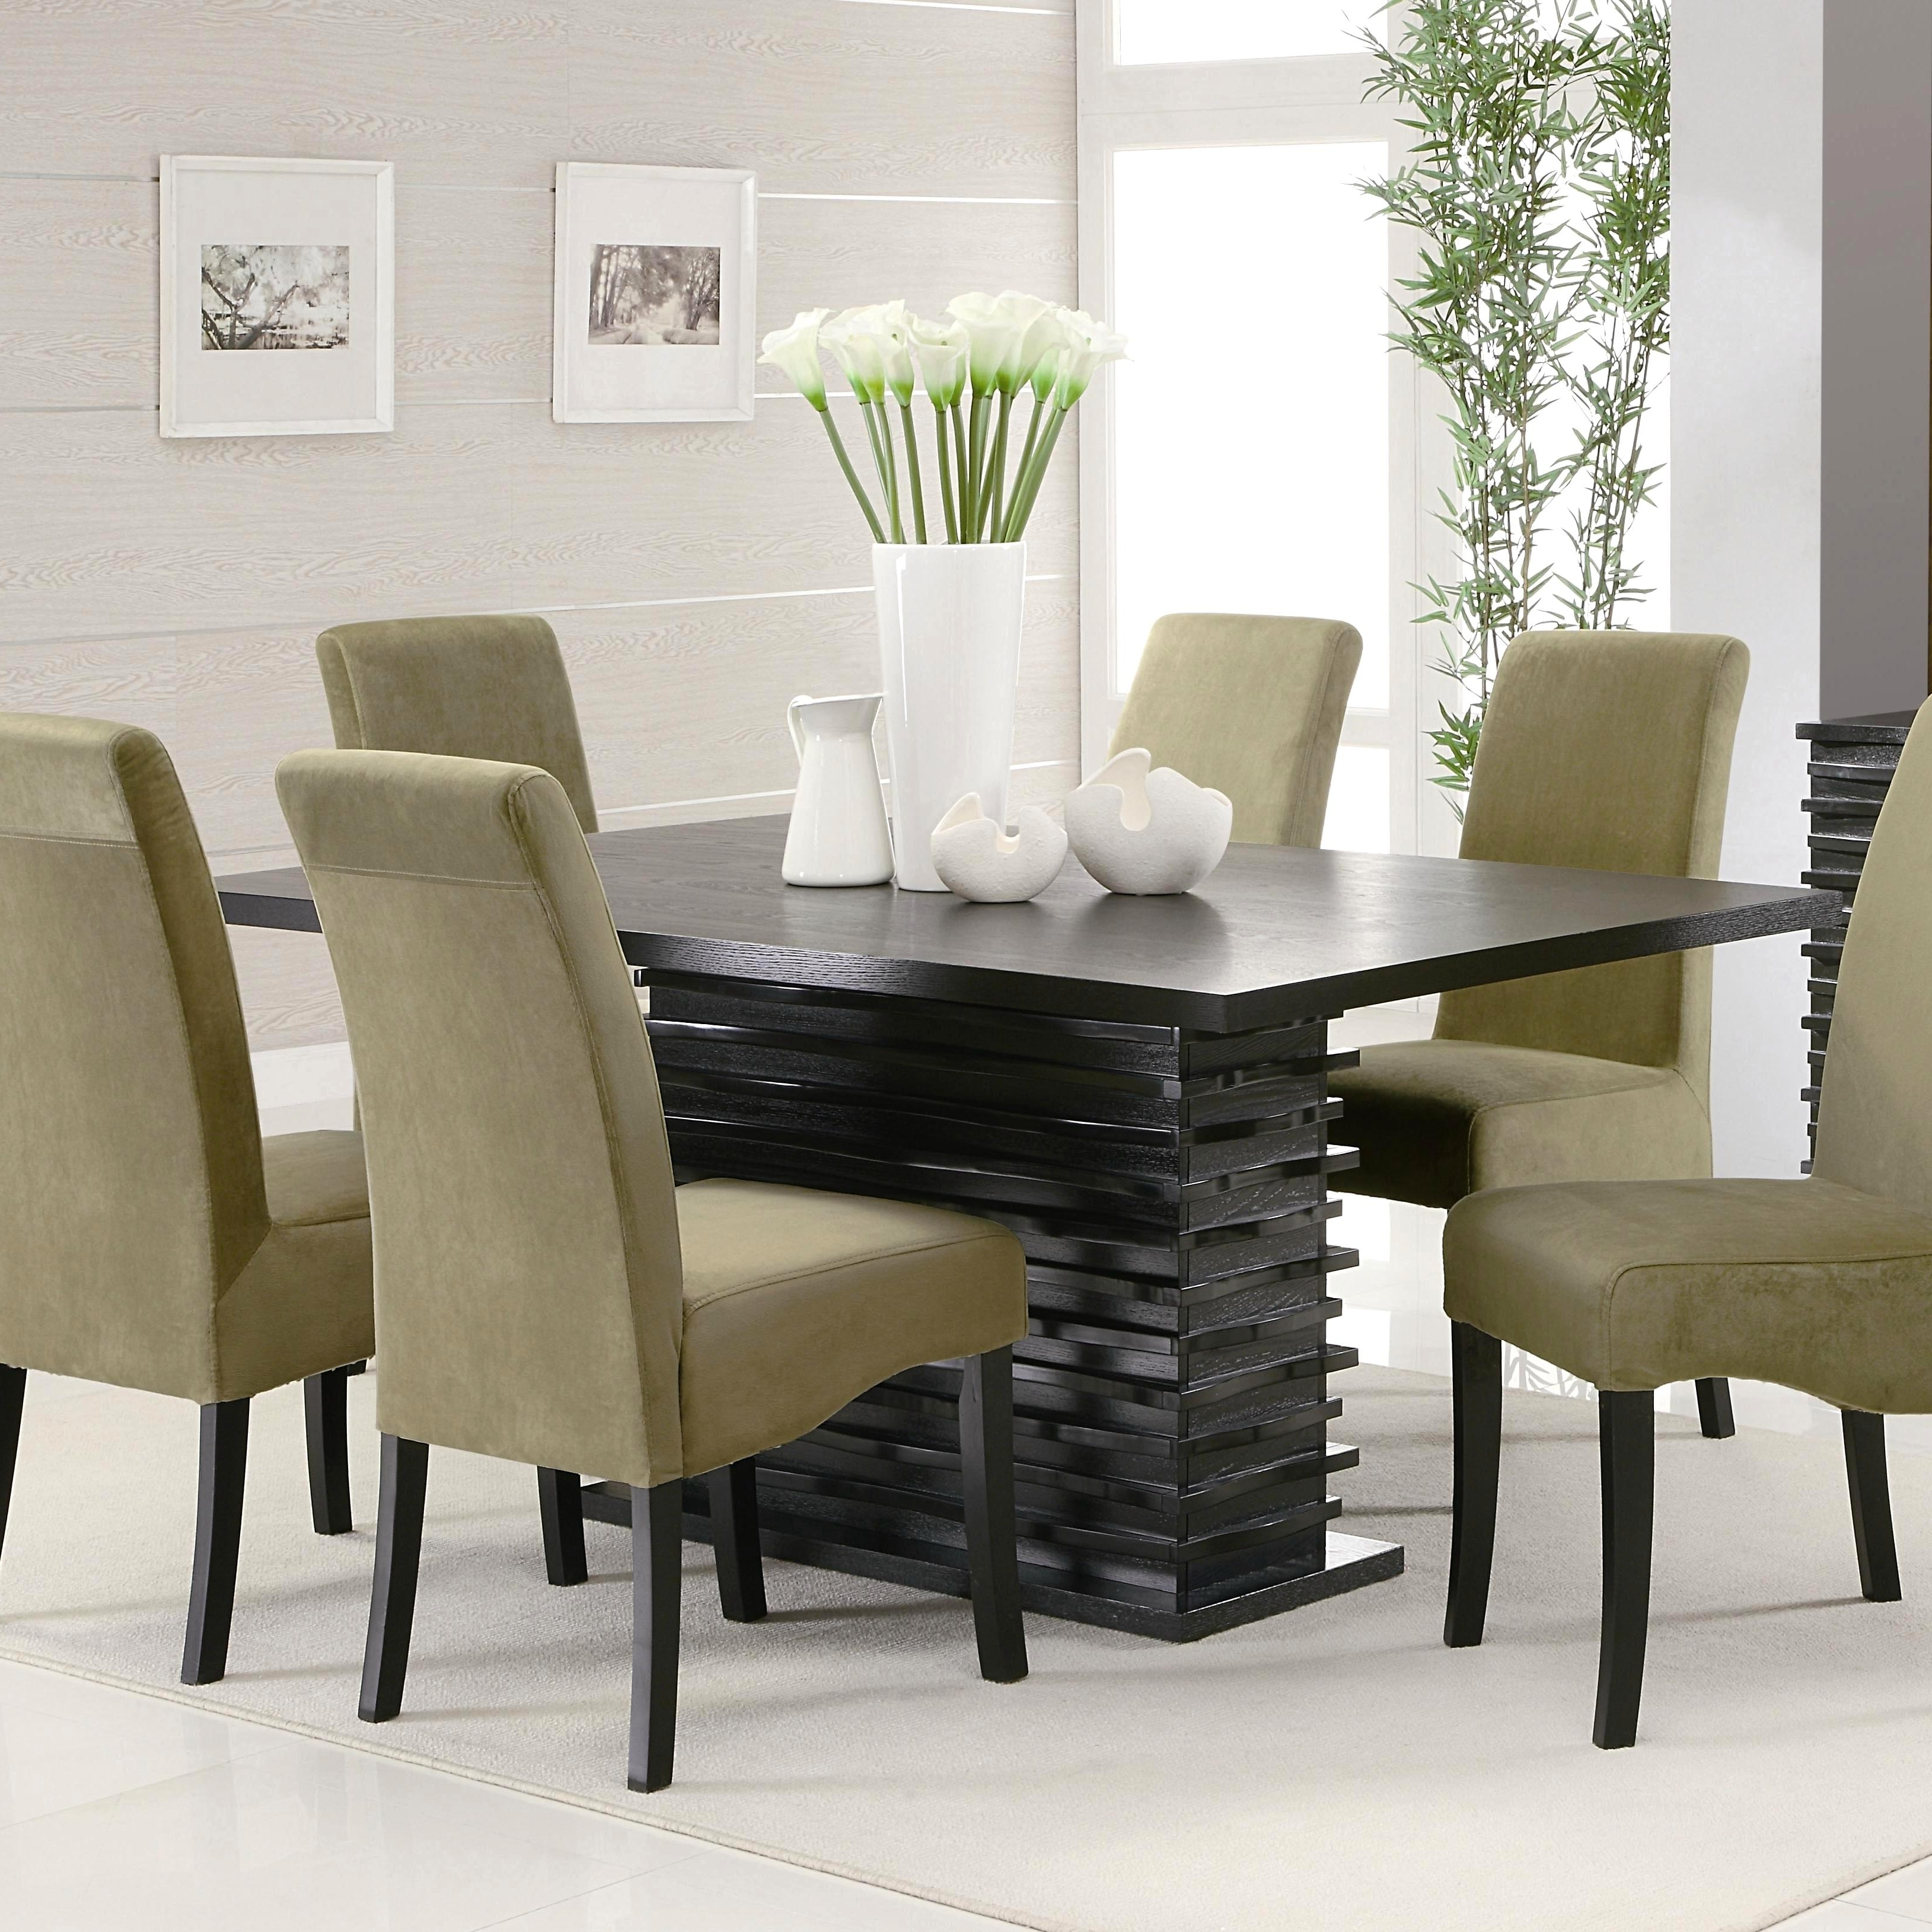 Well Liked Splendid Cream Dining Tables Chairs Luxurius Home Ning Chairs Pertaining To Green Dining Tables (View 24 of 25)